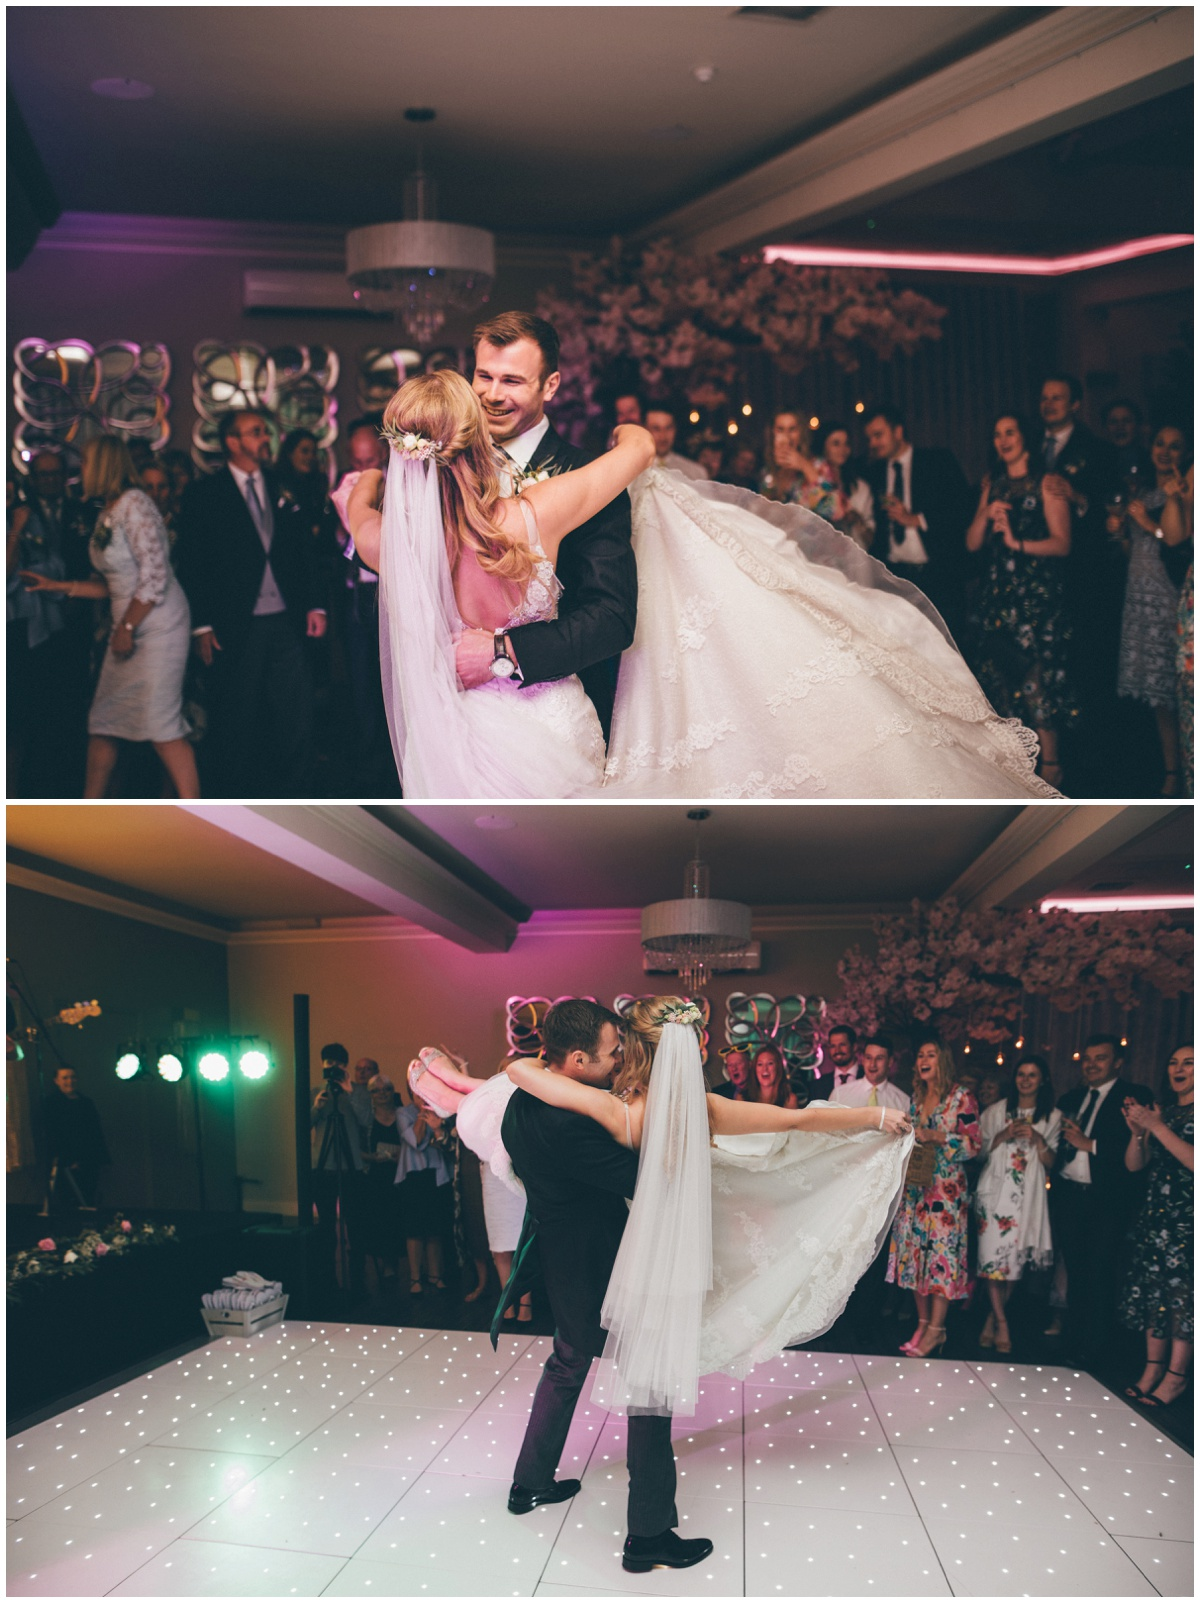 Bride gets lifted by her new husband during their First Dance to a Spice Girls song.